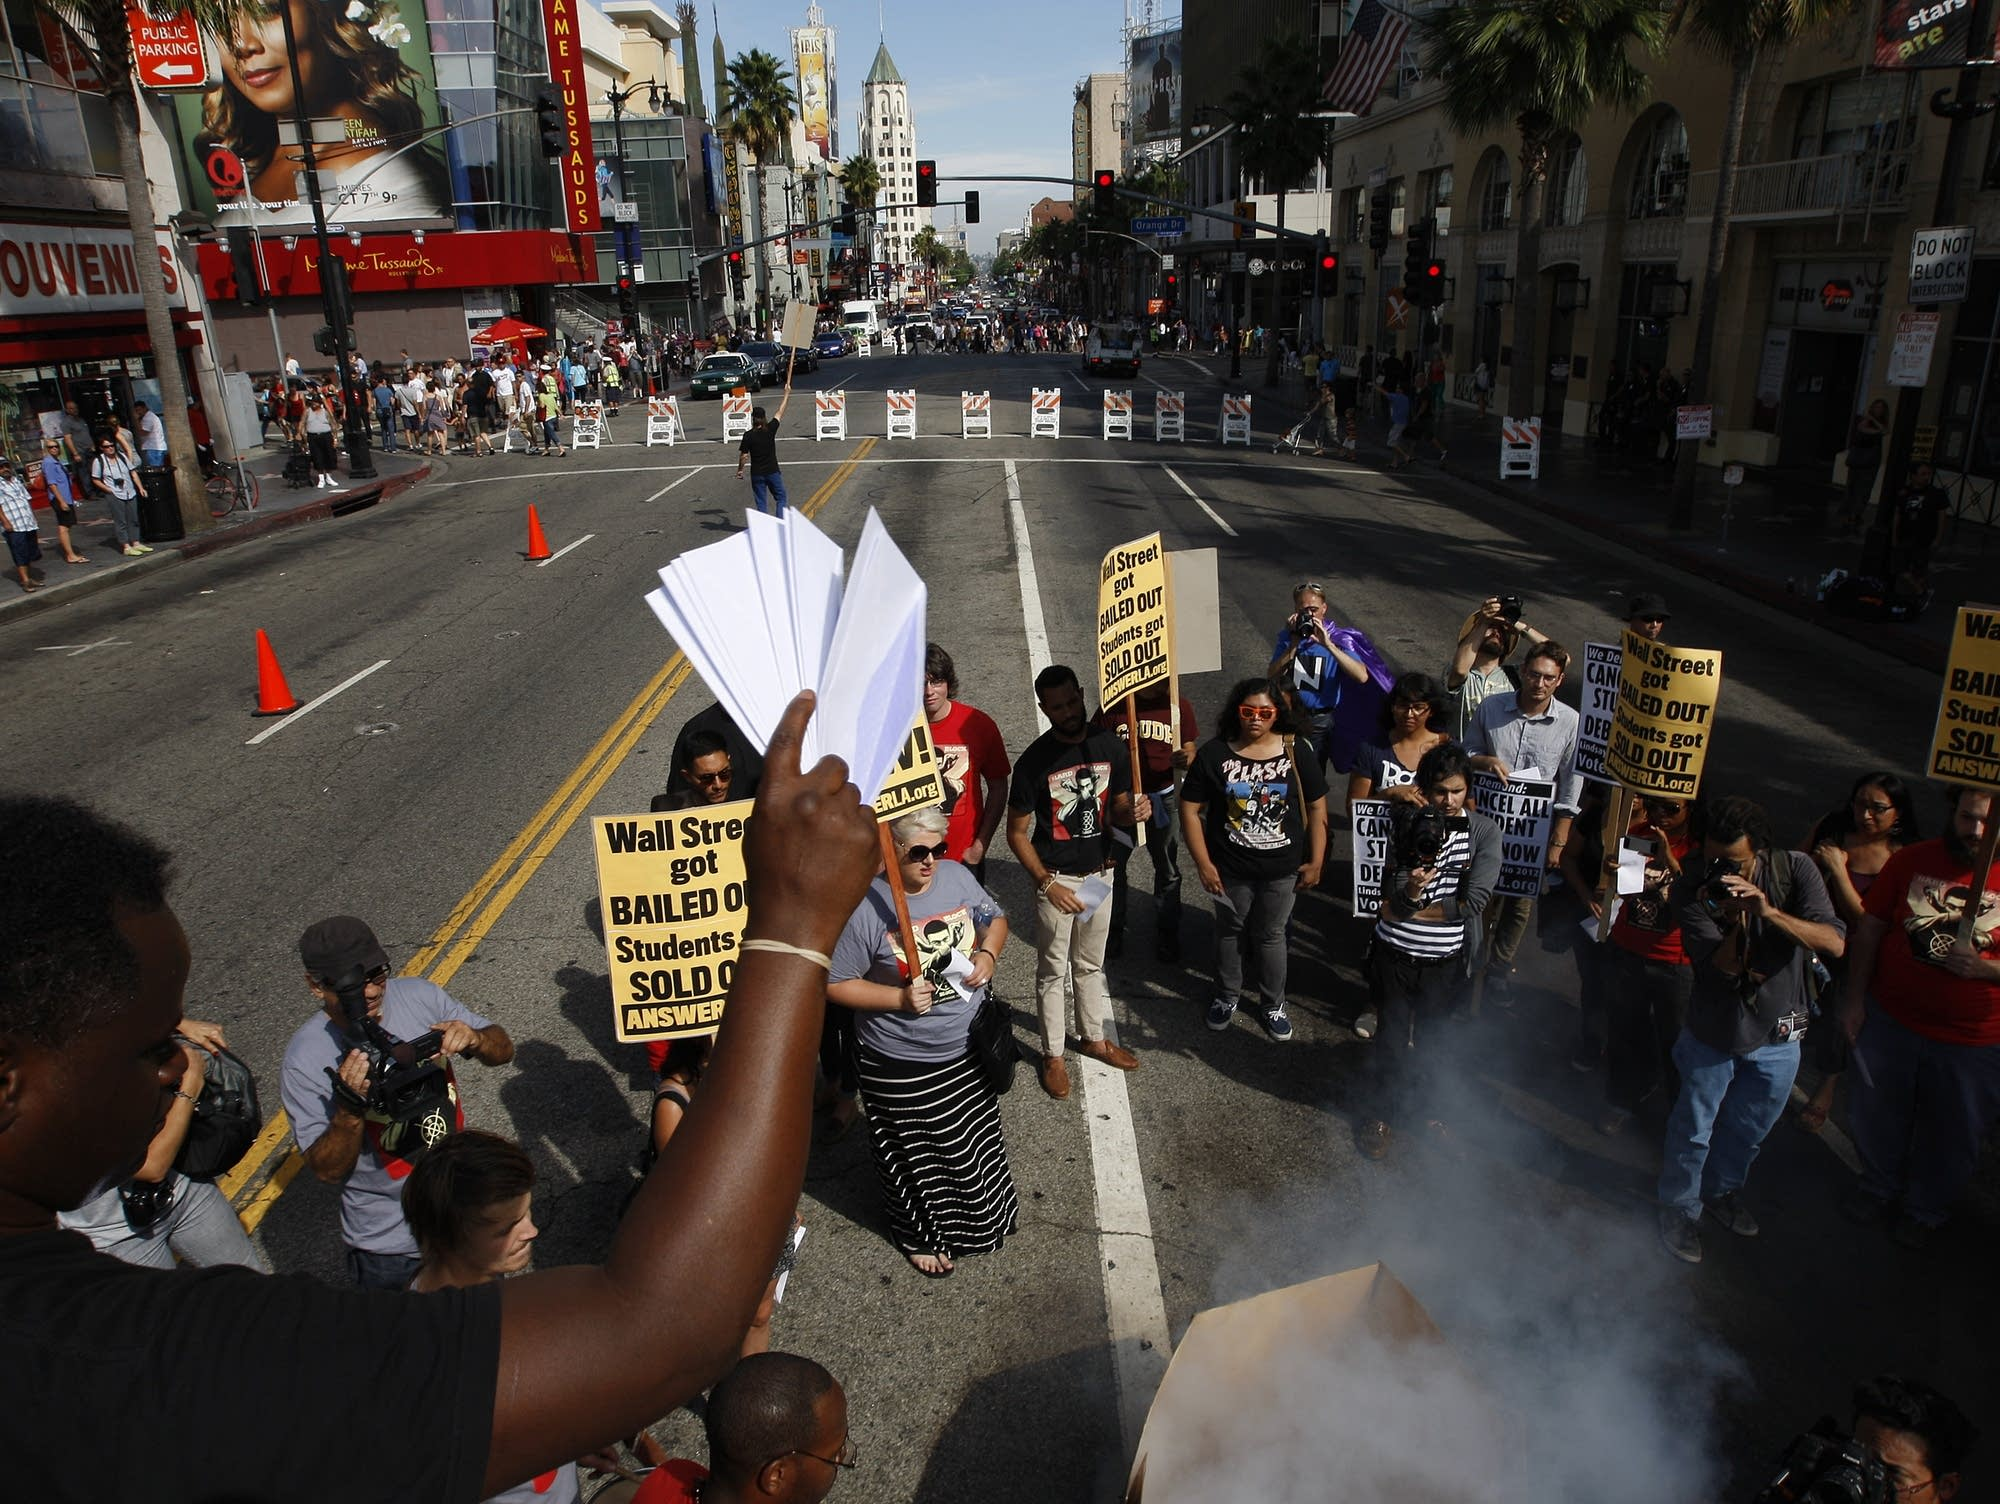 Activist Demonstrate Against High Cost Of College Education In U.S.